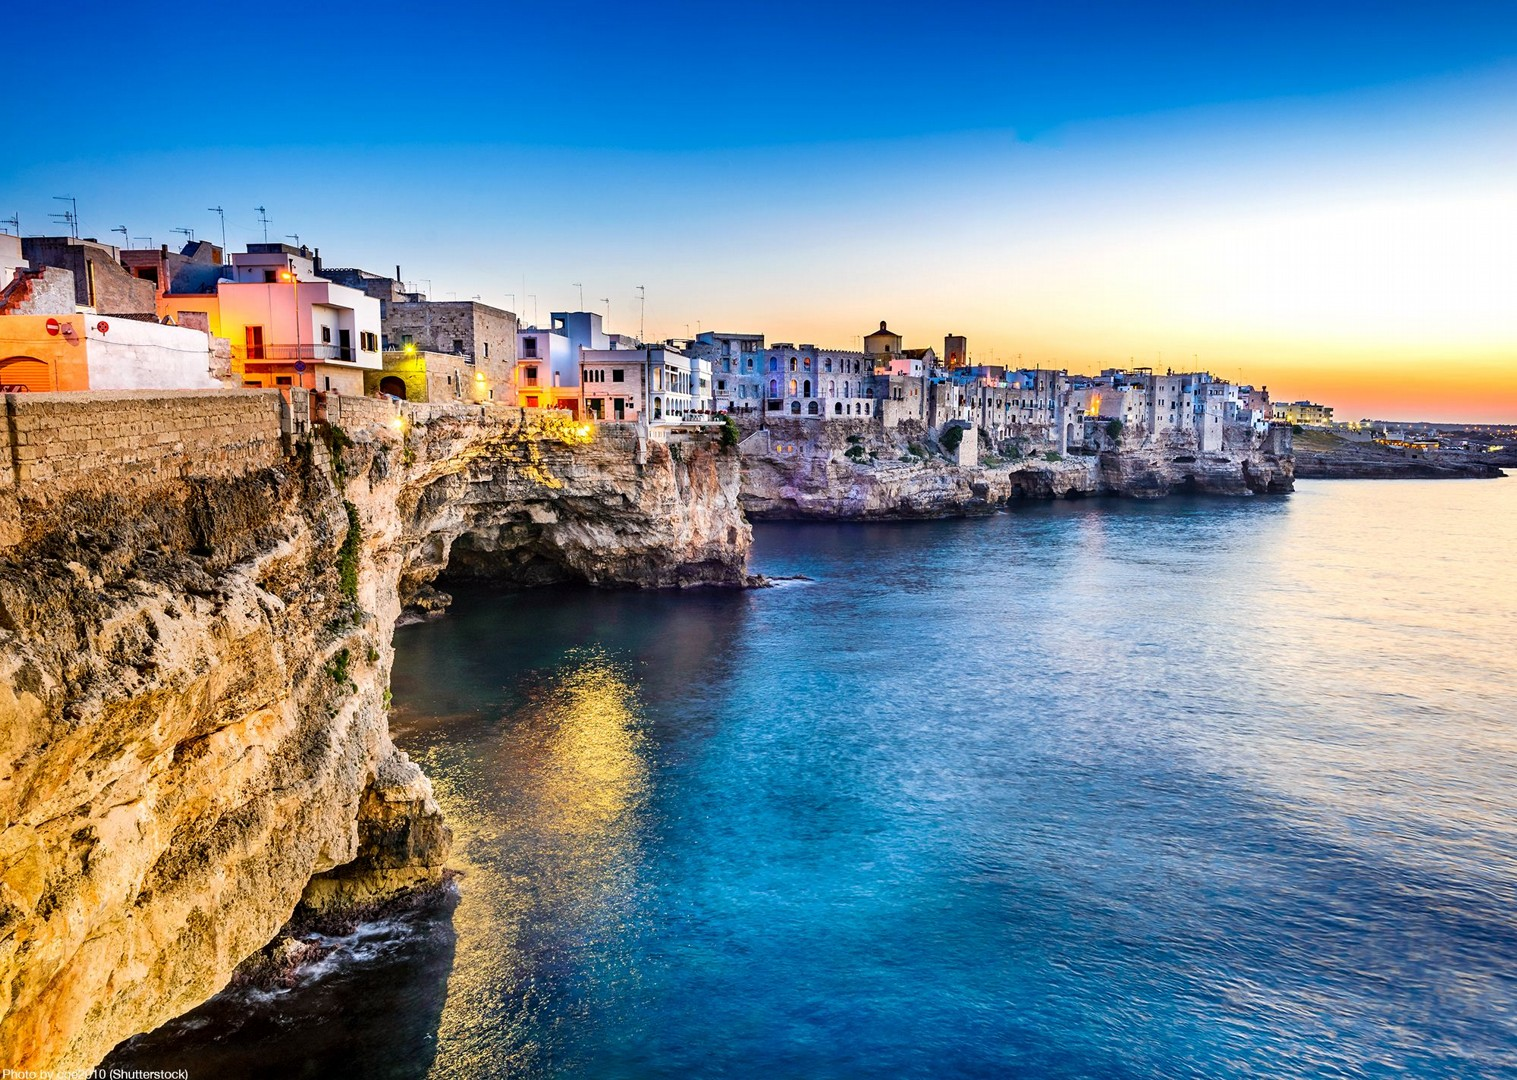 shutterstock_488694136.jpg - Italy - Puglia - Guided Leisure Cycling Holiday - Italia Leisure and Family Cycling